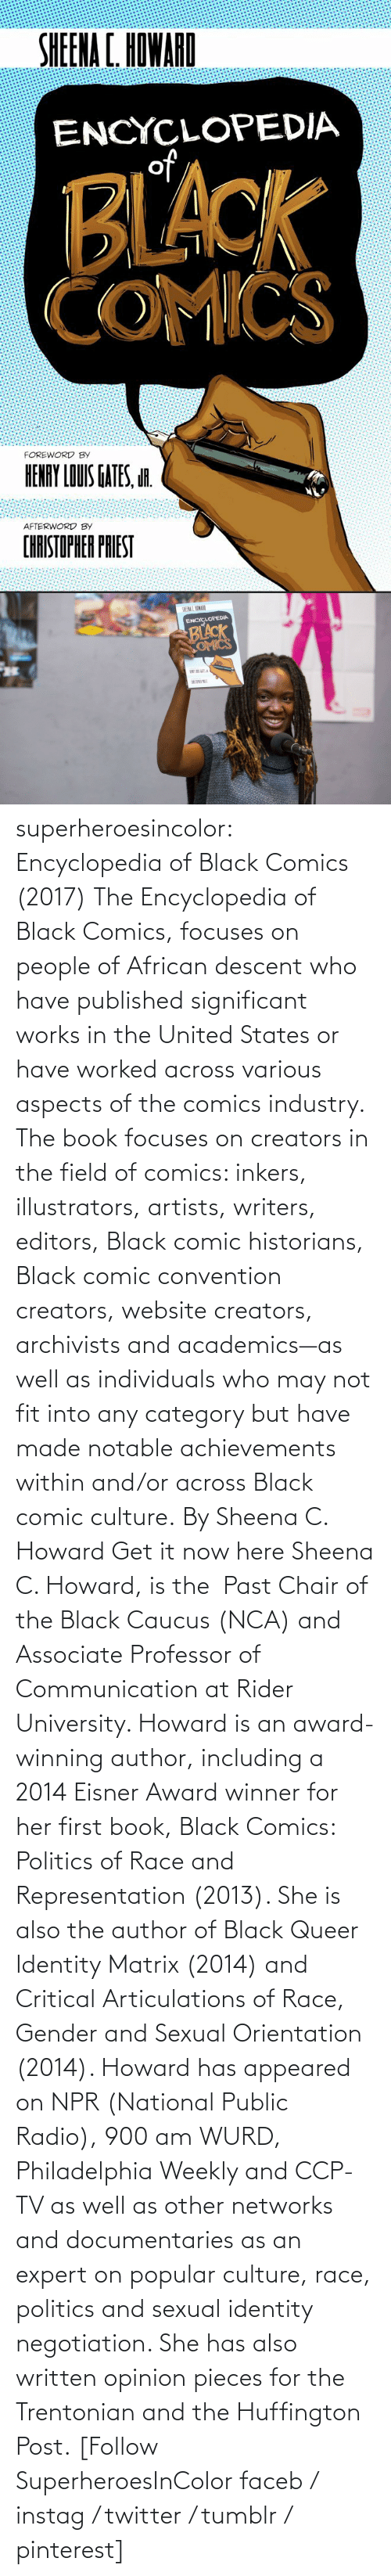 website: superheroesincolor: Encyclopedia of Black Comics (2017) The Encyclopedia of Black Comics, focuses on people of African descent who have published significant works in the United States or have worked across various aspects of the comics industry.  The book focuses on creators in the field of comics: inkers, illustrators, artists, writers, editors, Black comic historians, Black comic convention creators, website creators, archivists and academics—as well as individuals who may not fit into any category but have made notable achievements within and/or across Black comic culture. By Sheena C. Howard Get it now here  Sheena C. Howard, is the  Past Chair of the Black Caucus (NCA) and Associate Professor of Communication at Rider University. Howard is an award-winning author, including a 2014 Eisner Award winner for her first book, Black Comics: Politics of Race and Representation (2013). She is also the author of Black Queer Identity Matrix (2014) and Critical Articulations of Race, Gender and Sexual Orientation (2014). Howard has appeared on NPR (National Public Radio), 900 am WURD, Philadelphia Weekly and CCP-TV as well as other networks and documentaries as an expert on popular culture, race, politics and sexual identity negotiation. She has also written opinion pieces for the Trentonian and the Huffington Post.   [Follow SuperheroesInColor faceb / instag / twitter / tumblr / pinterest]